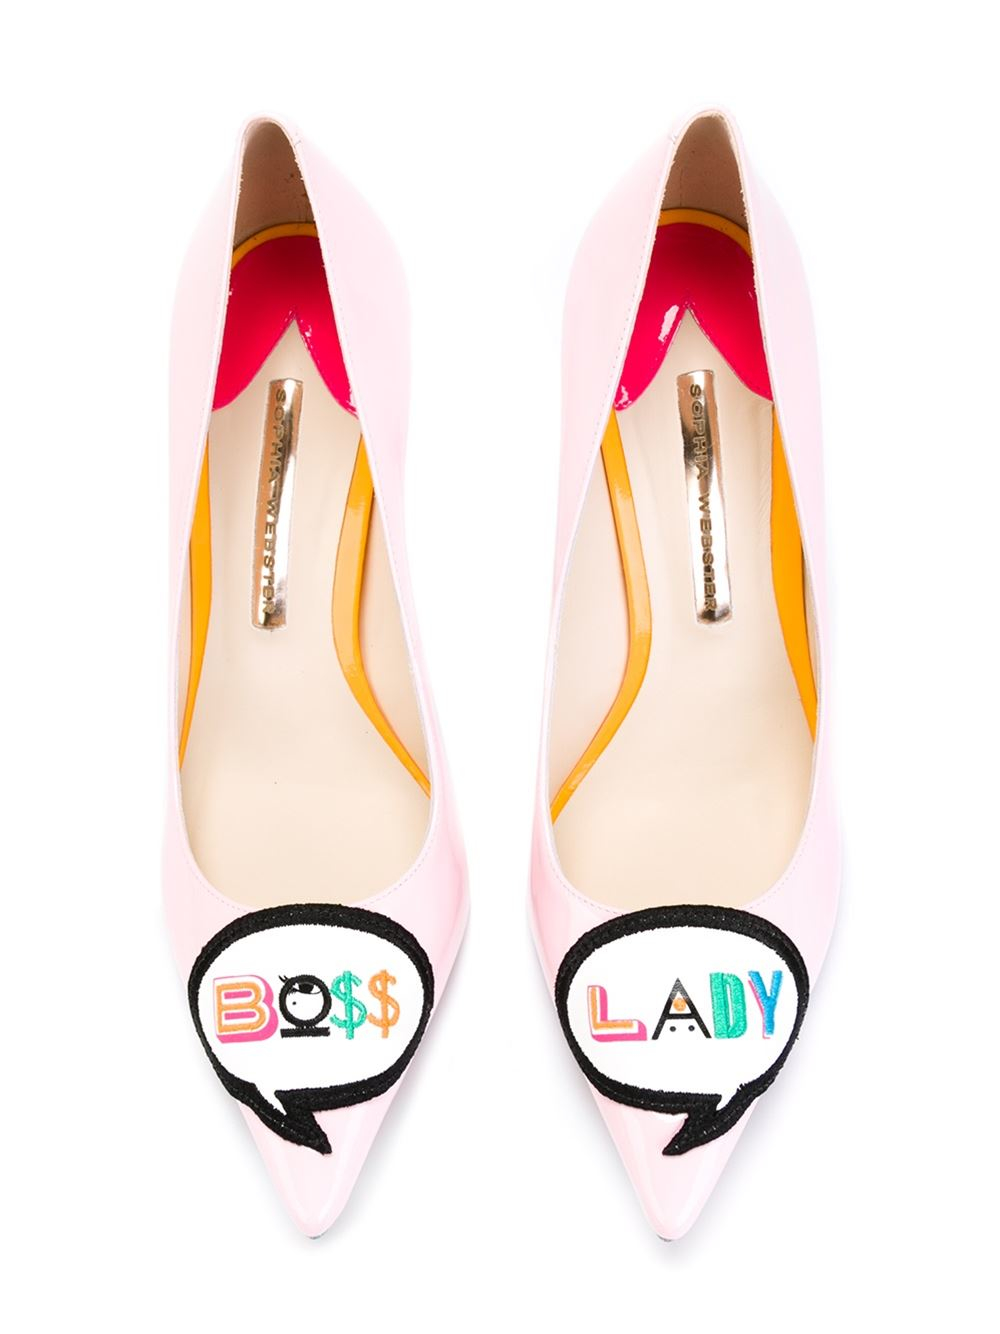 dcf06fdc76c Lyst - Sophia Webster Boss Lady Patent-Leather Pumps in Pink